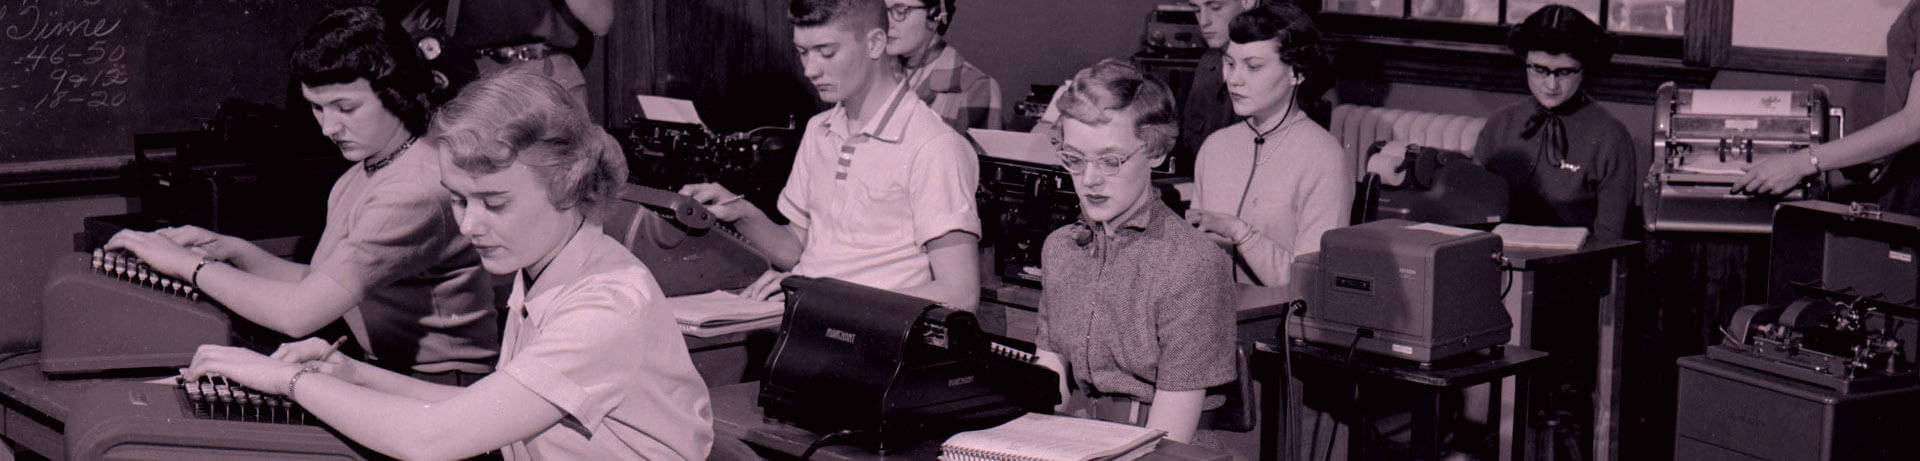 Photo of students in typing class